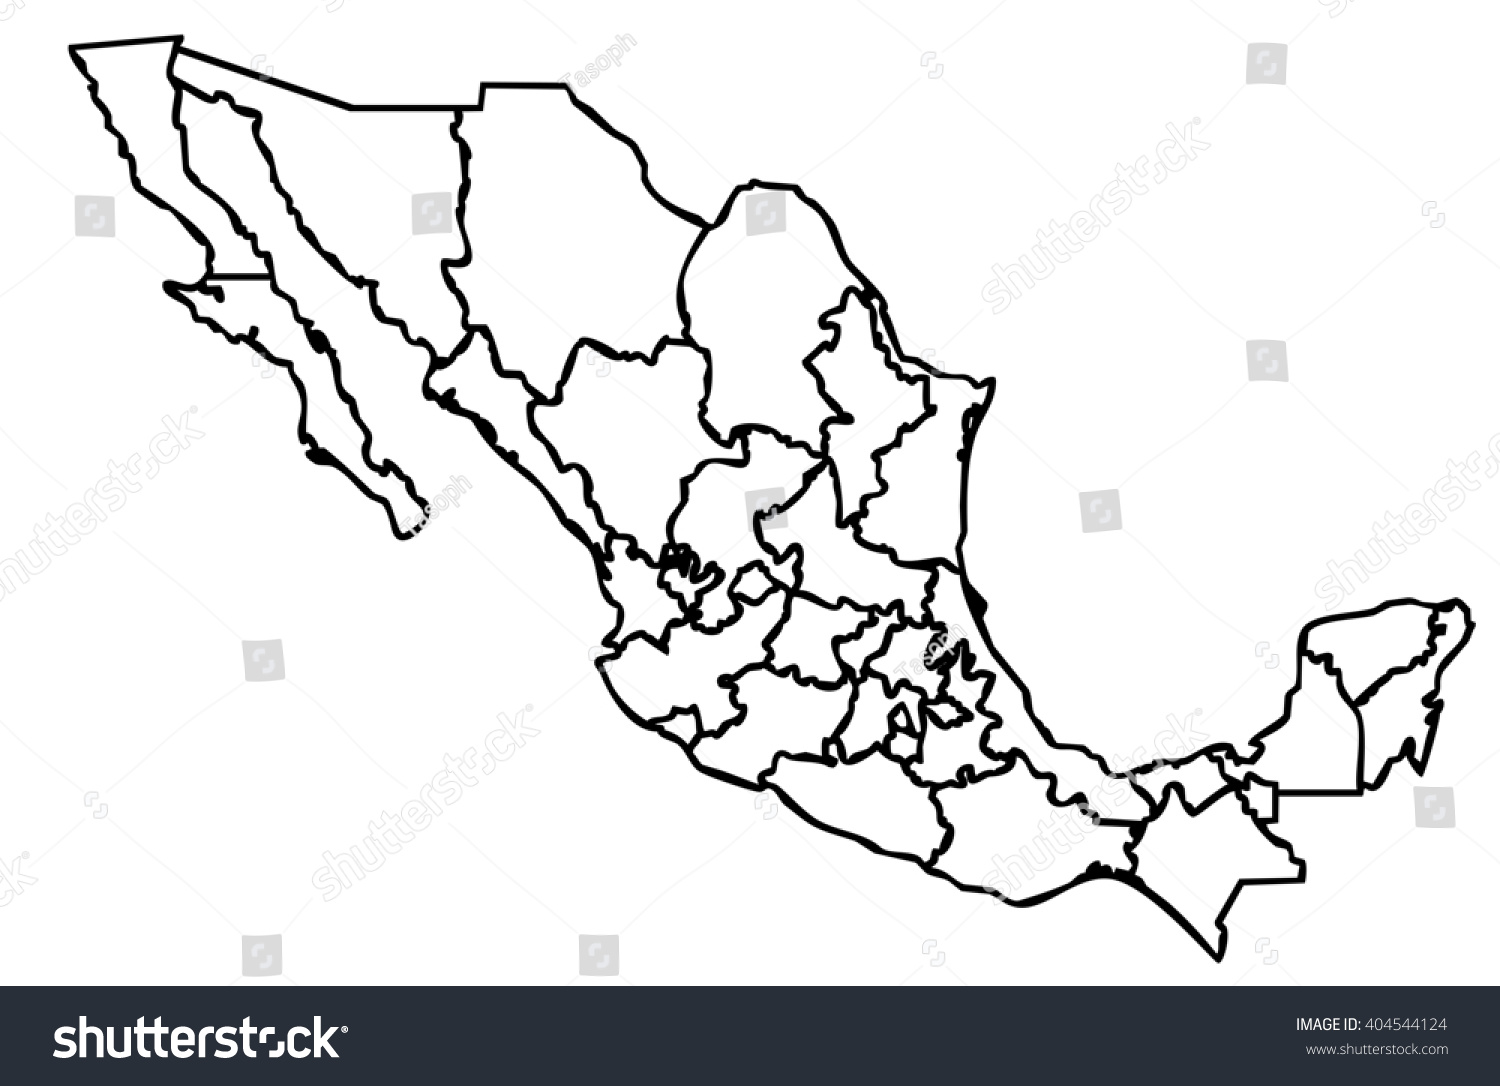 Isolated Political Mexican Map Mexico State Stock